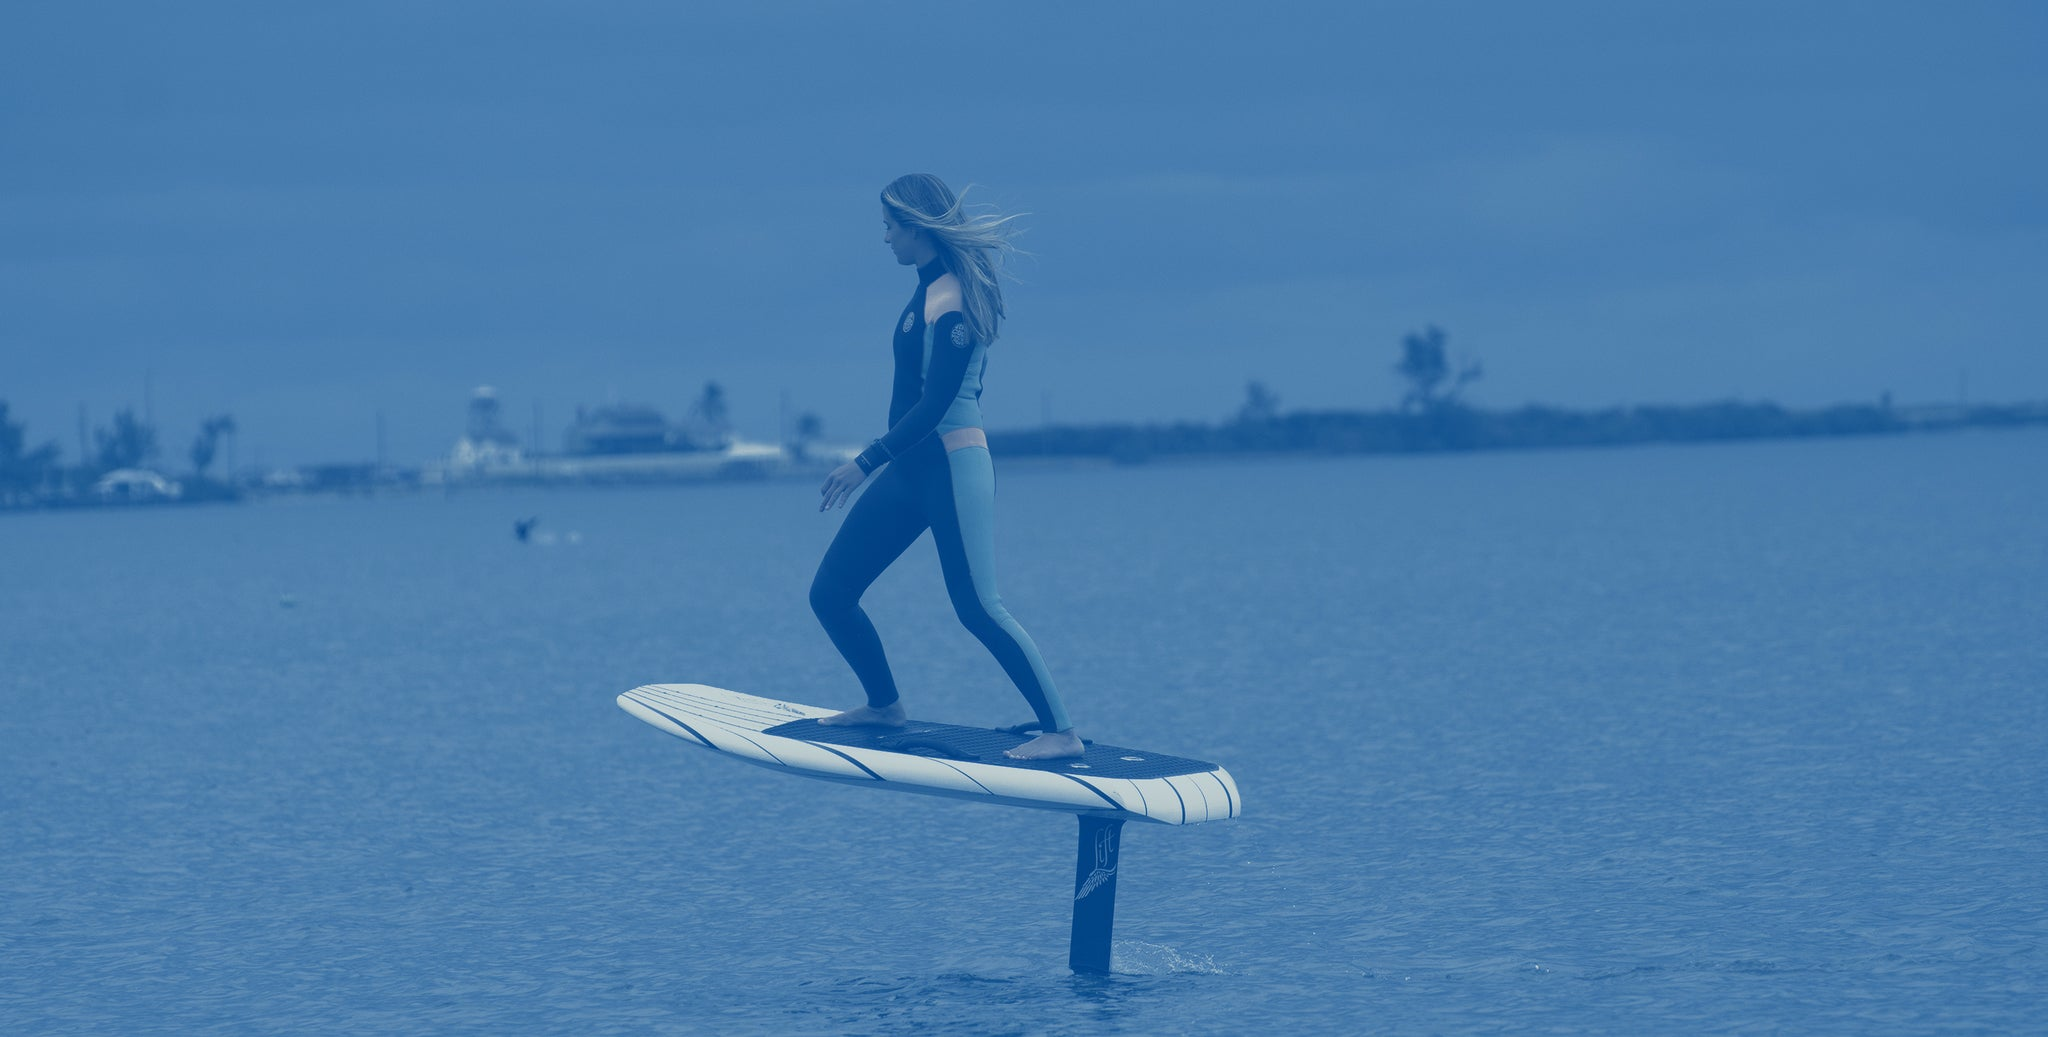 Girl flying on a electric hydrofoil in Jupiter Florida